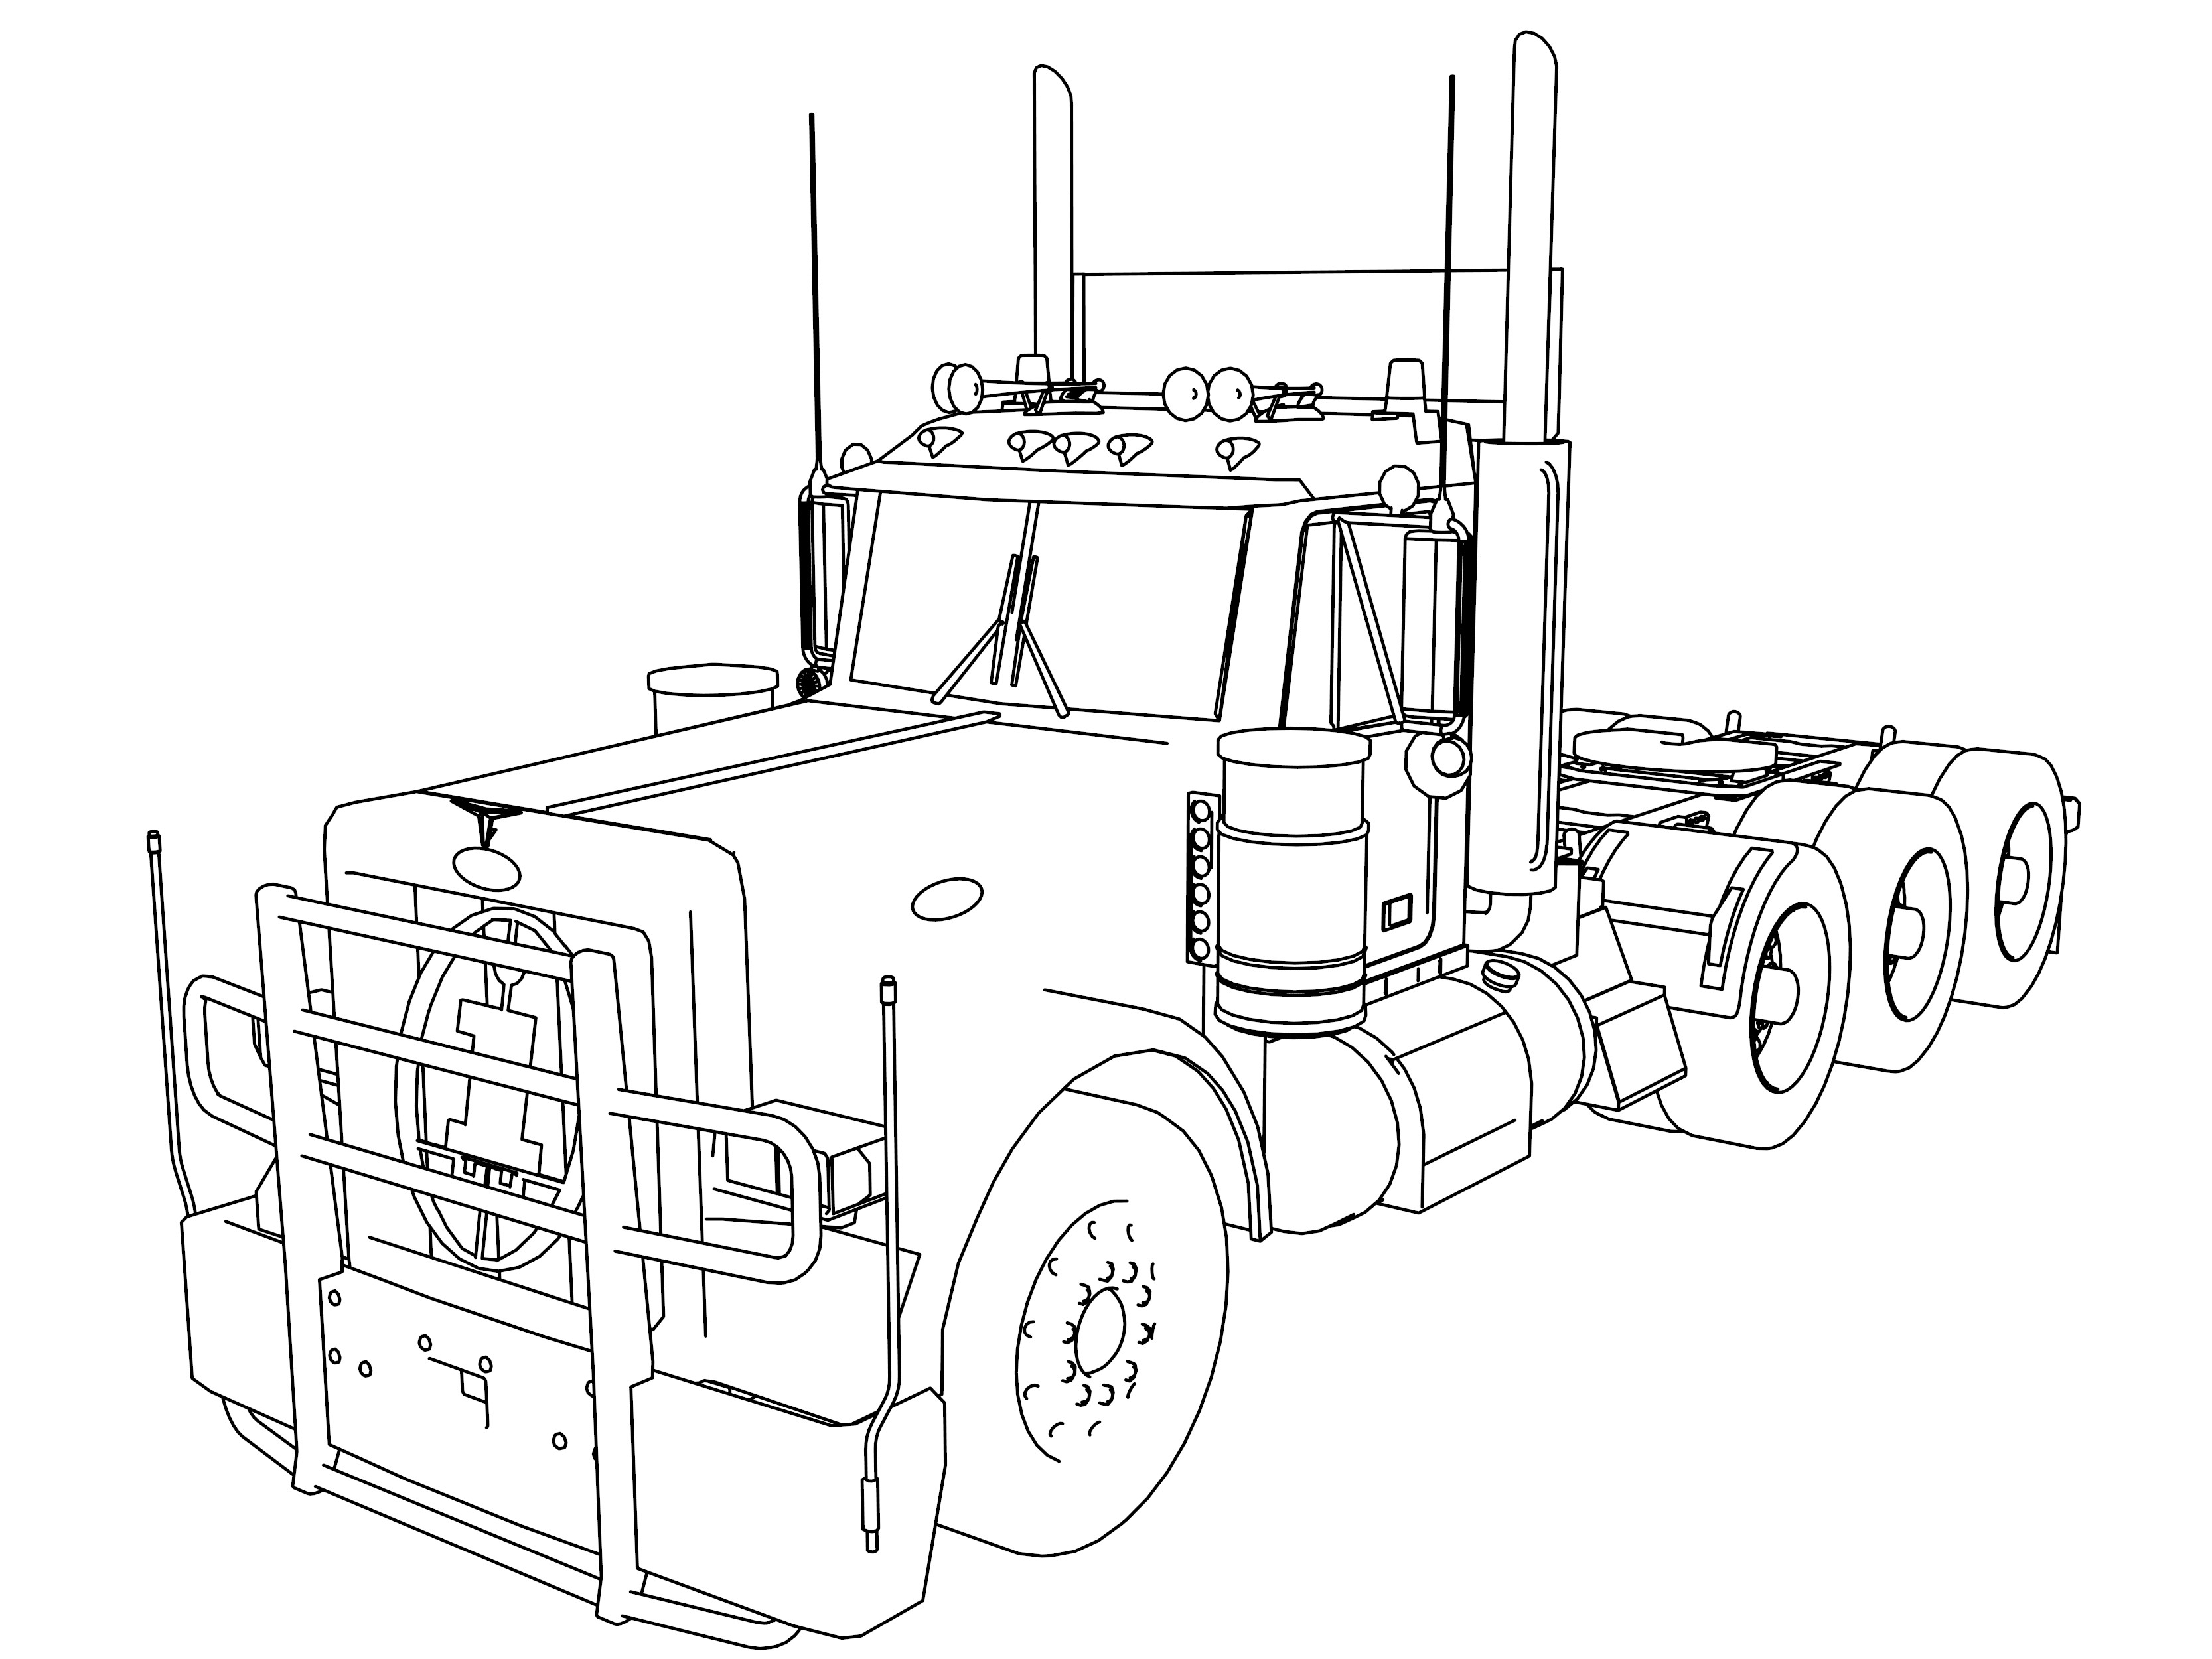 horse trailer coloring pages horse trailer drawing at getdrawings free download trailer pages horse coloring